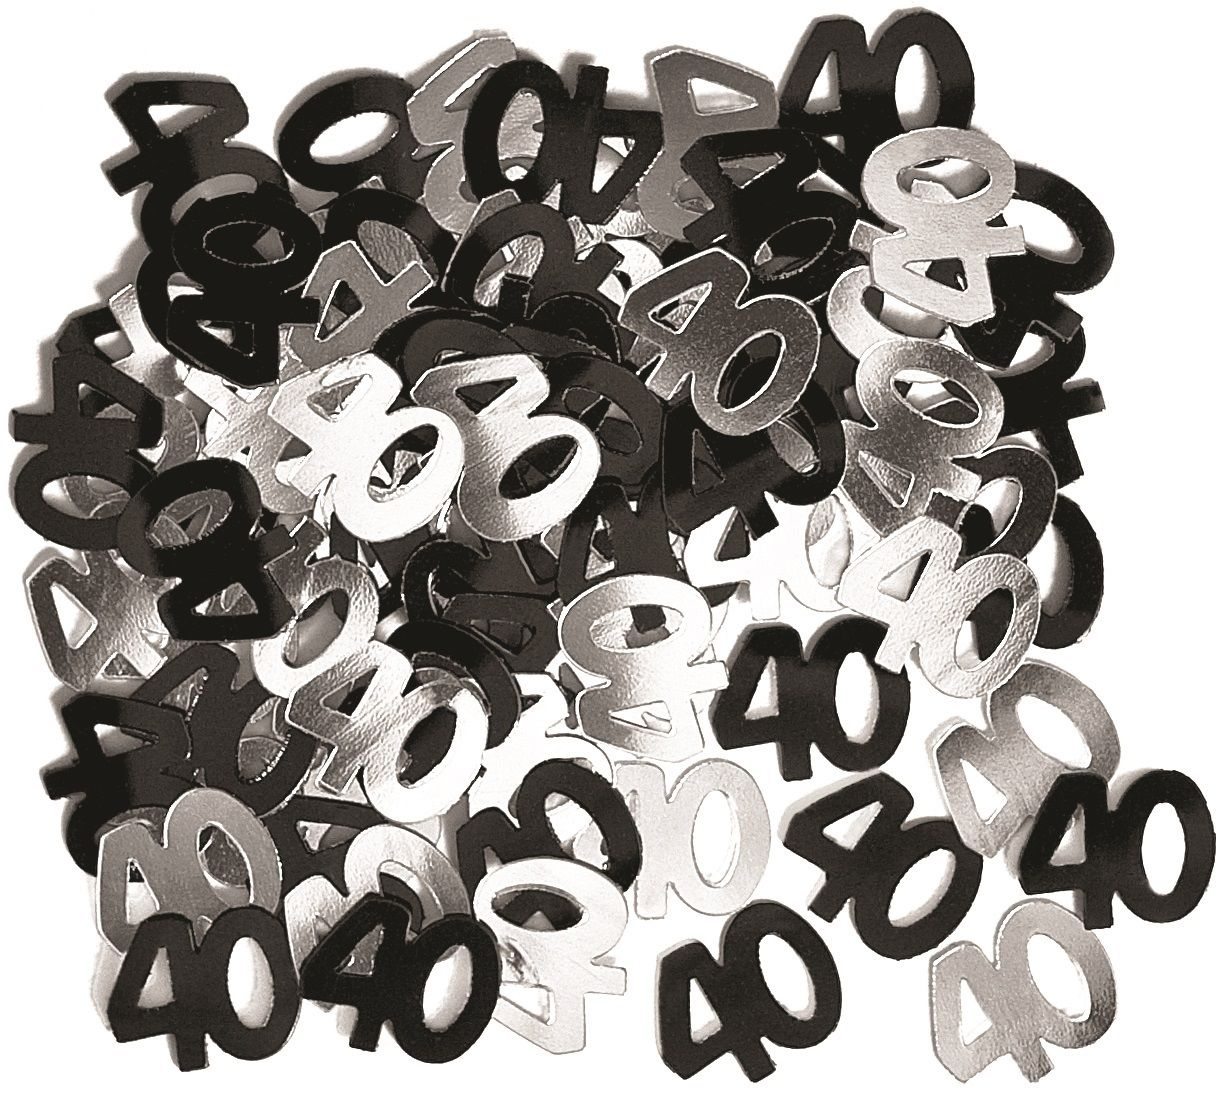 Black Glitz 40th Birthday Confeeti 14gms Party Savers 40th